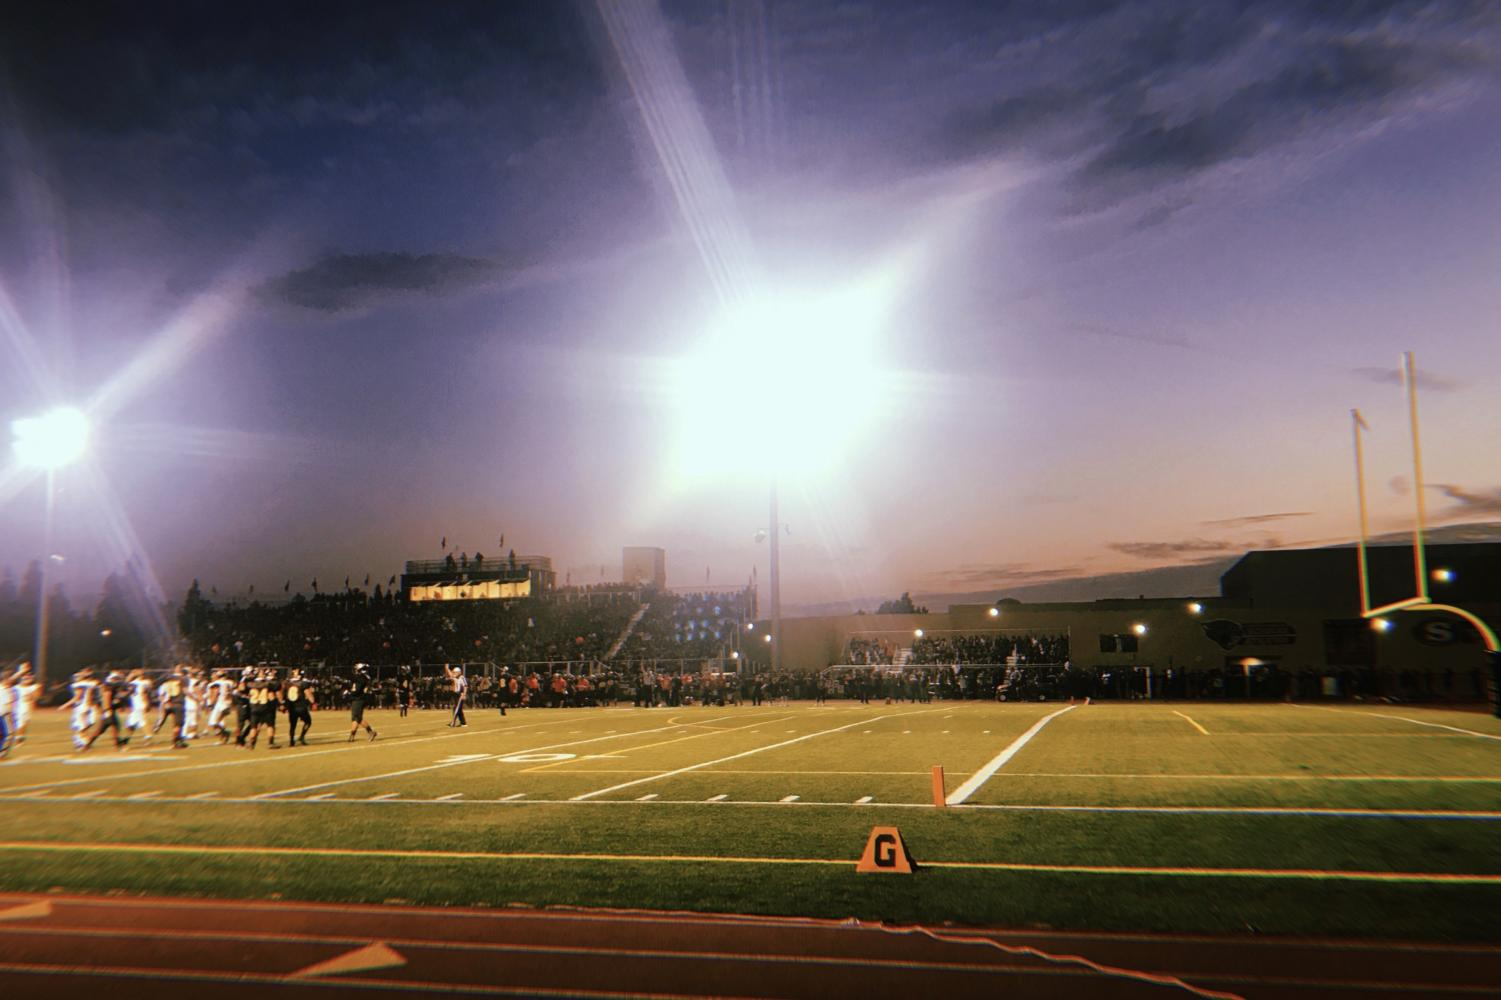 Football game between Godinez and Segerstrom on August 31.